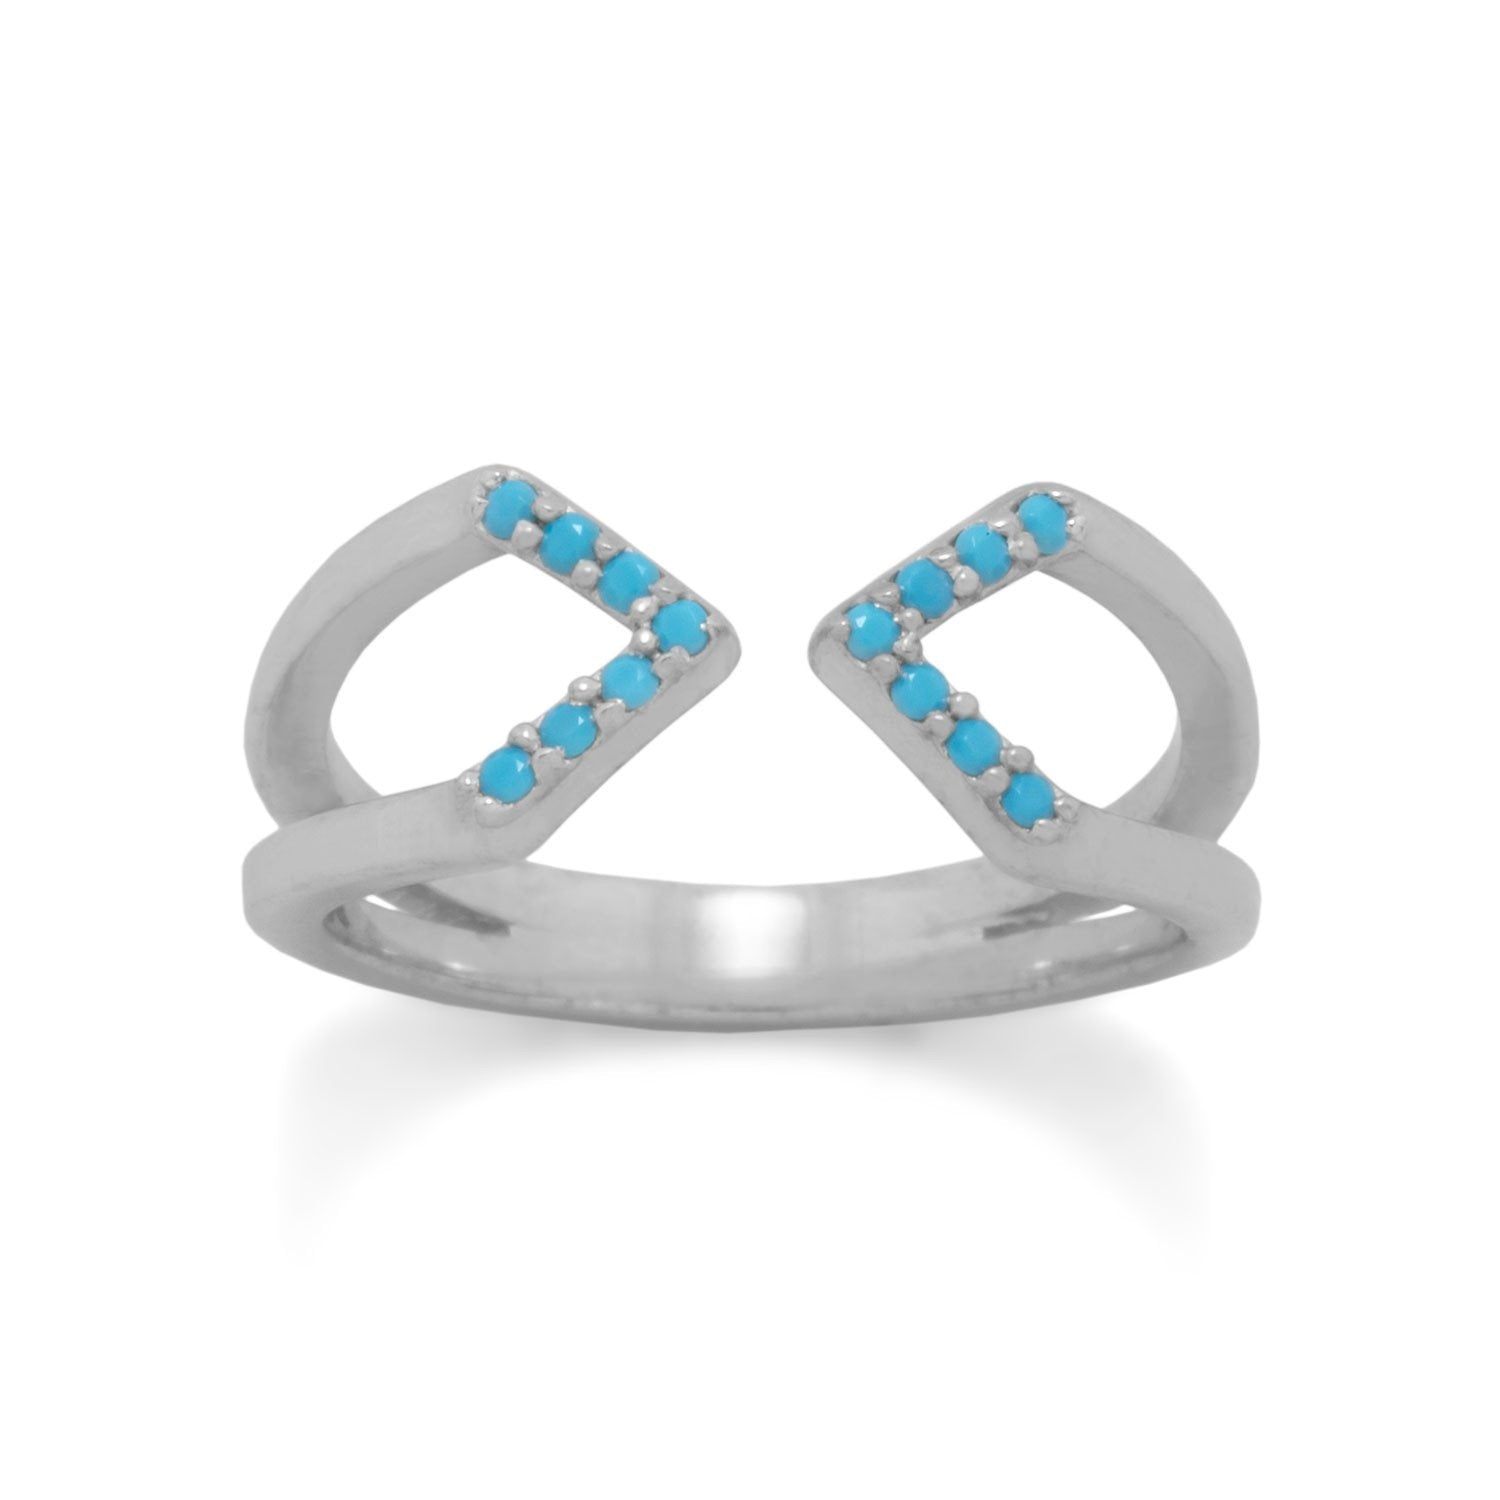 Rhodium Plated Nano Turquoise Split Ring - Rocky Mt. Outlet Inc - Shop & Save 24/7